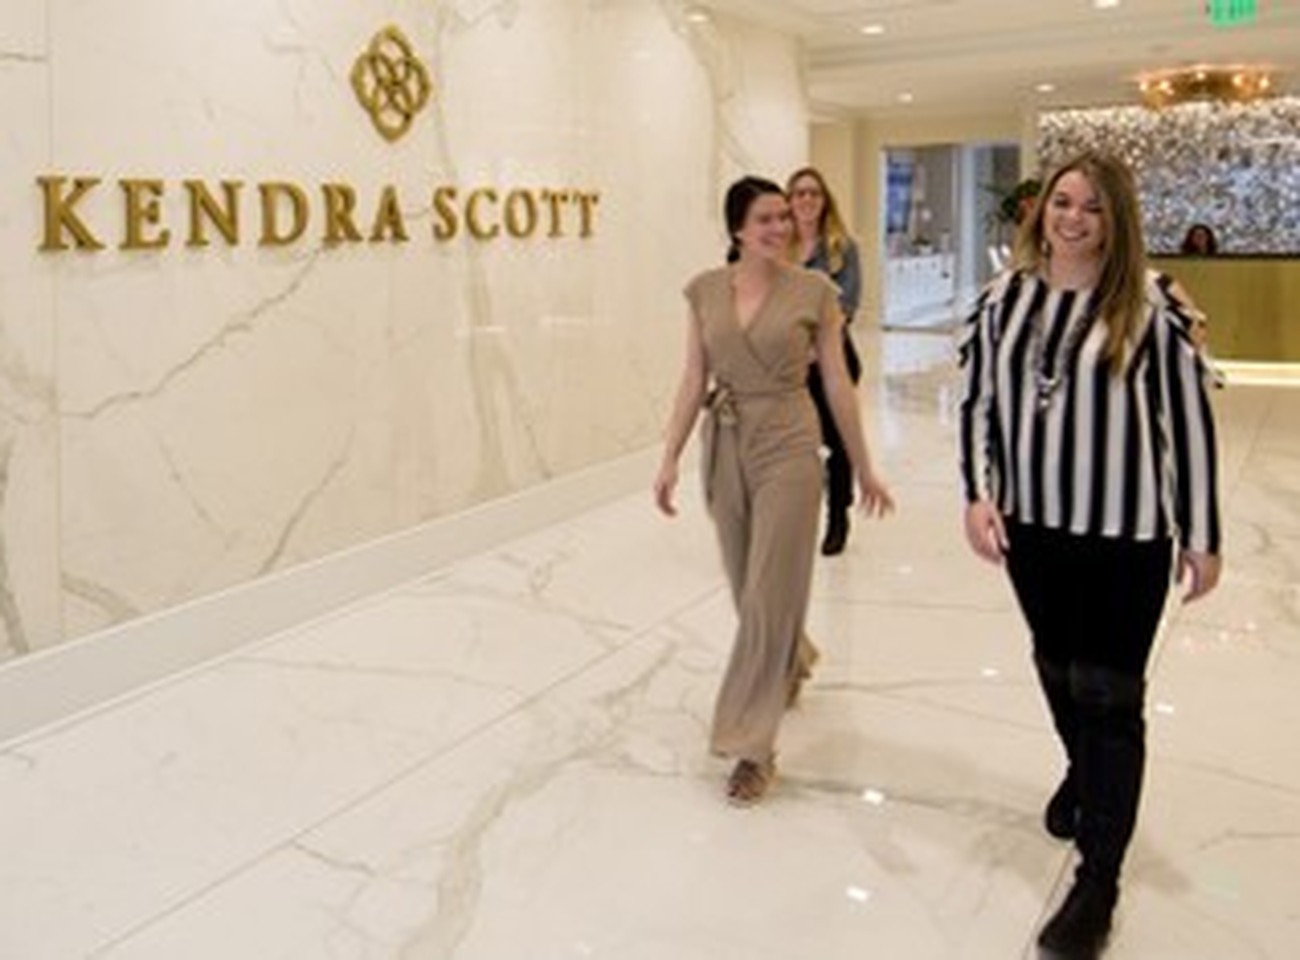 Kendra Scott Careers